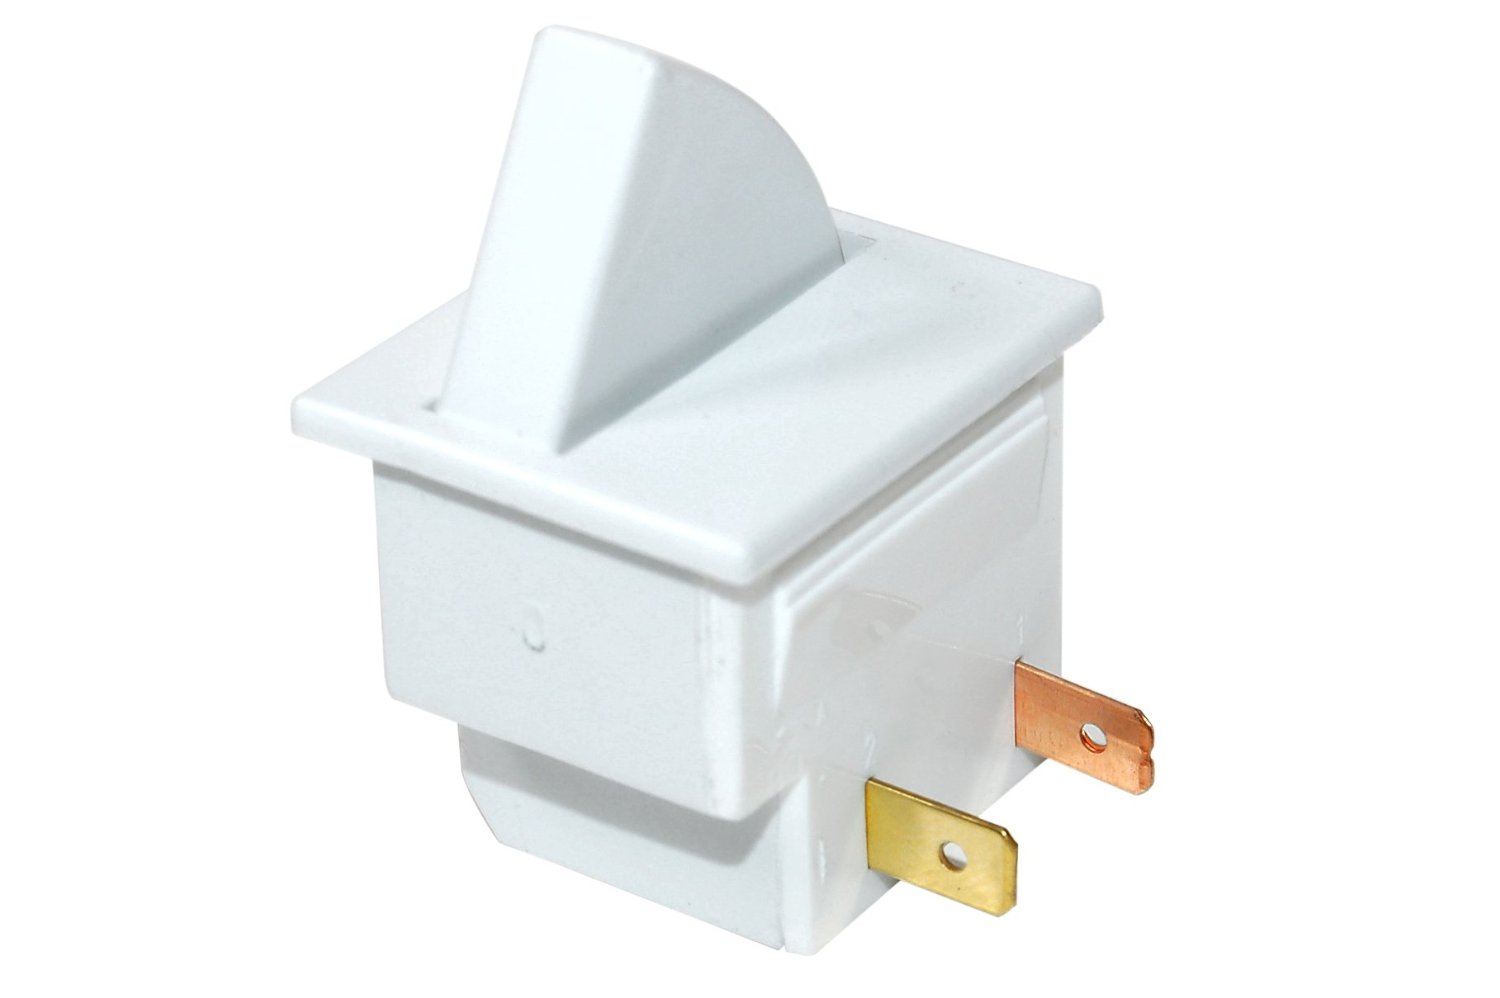 Light Switch | On/Off switch | Part No:4094880285